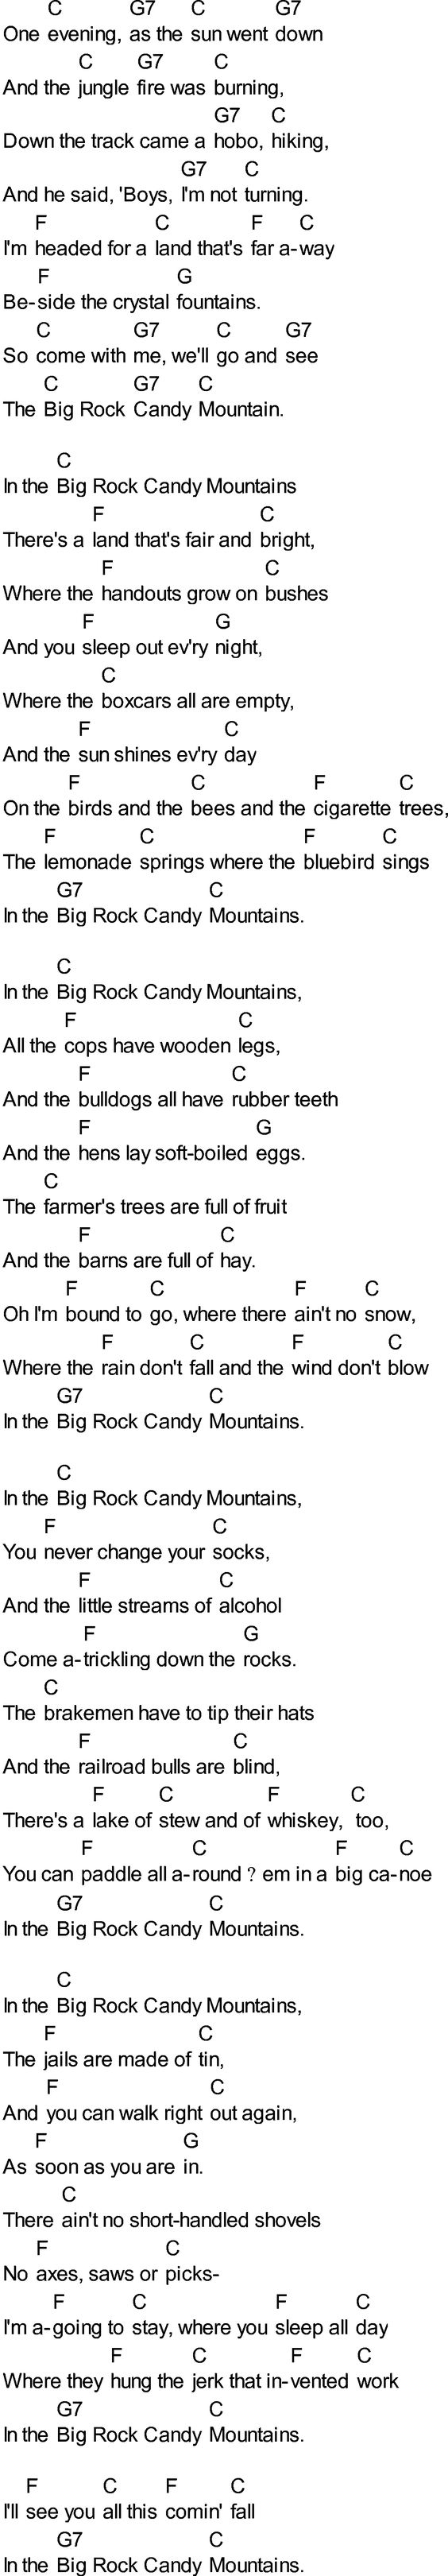 BURL IVES - THE BIG ROCK CANDY MOUNTAIN LYRICS